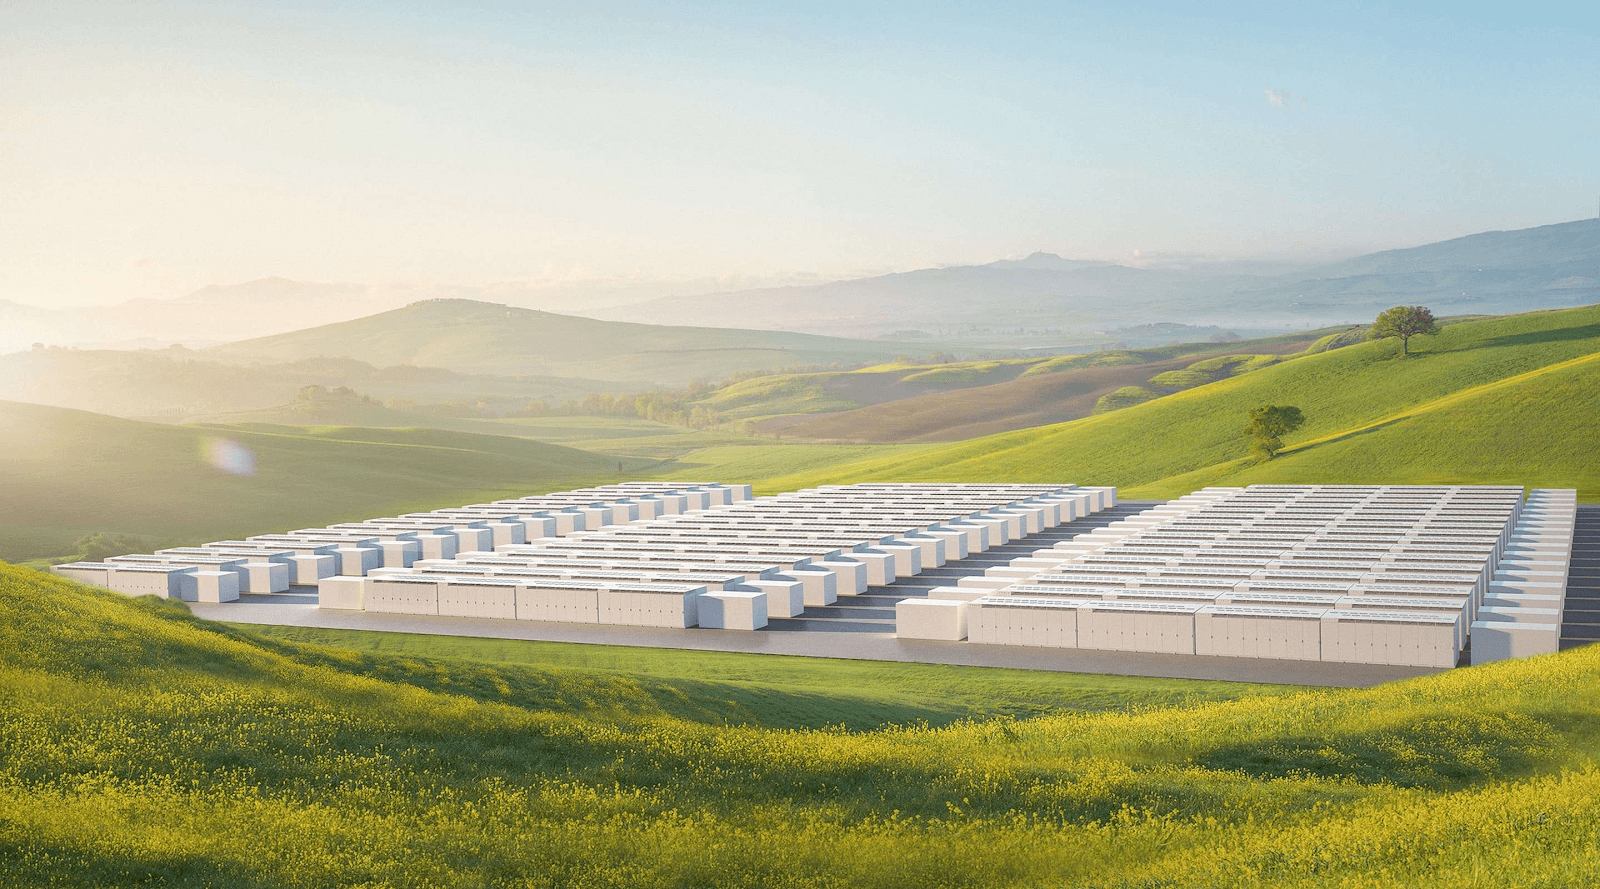 Tesla Battery Storage: Growth Is Limited